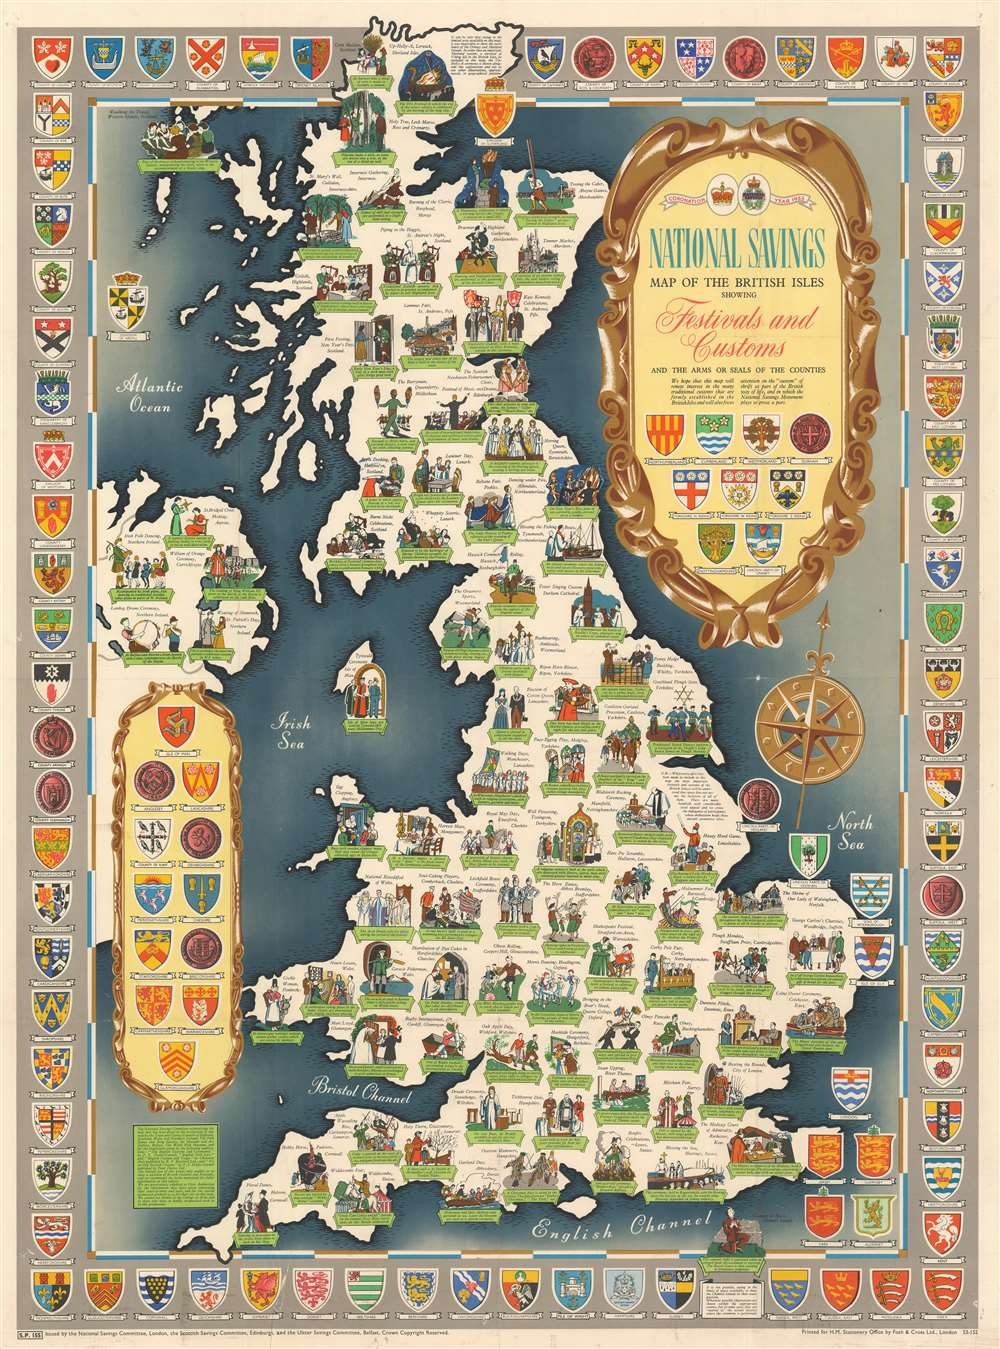 National Savings Map of the British Isles Showing Festivals and Customs and the Arms or Seals of the Counties.